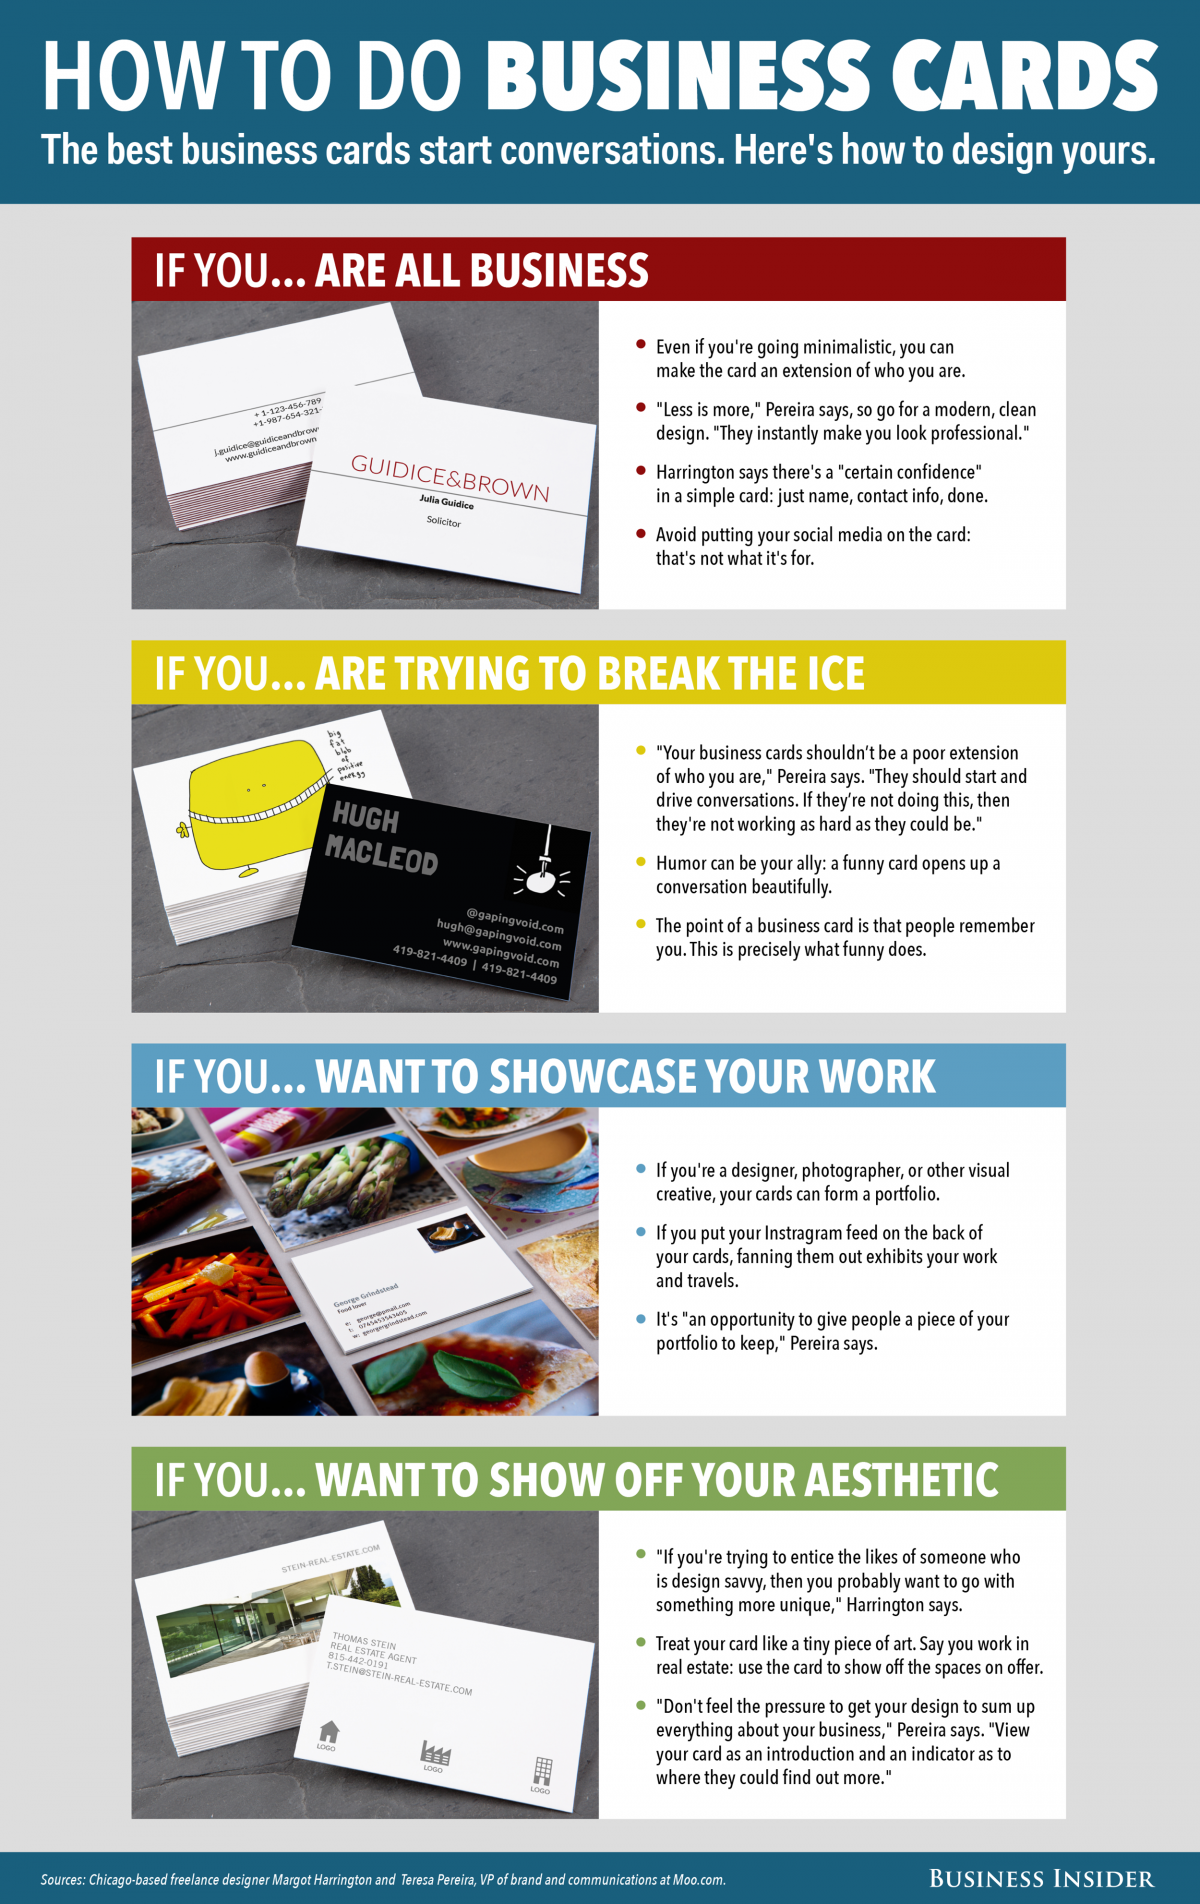 Here Are The Secrets To A Great Business Card | Pinterest | Business ...